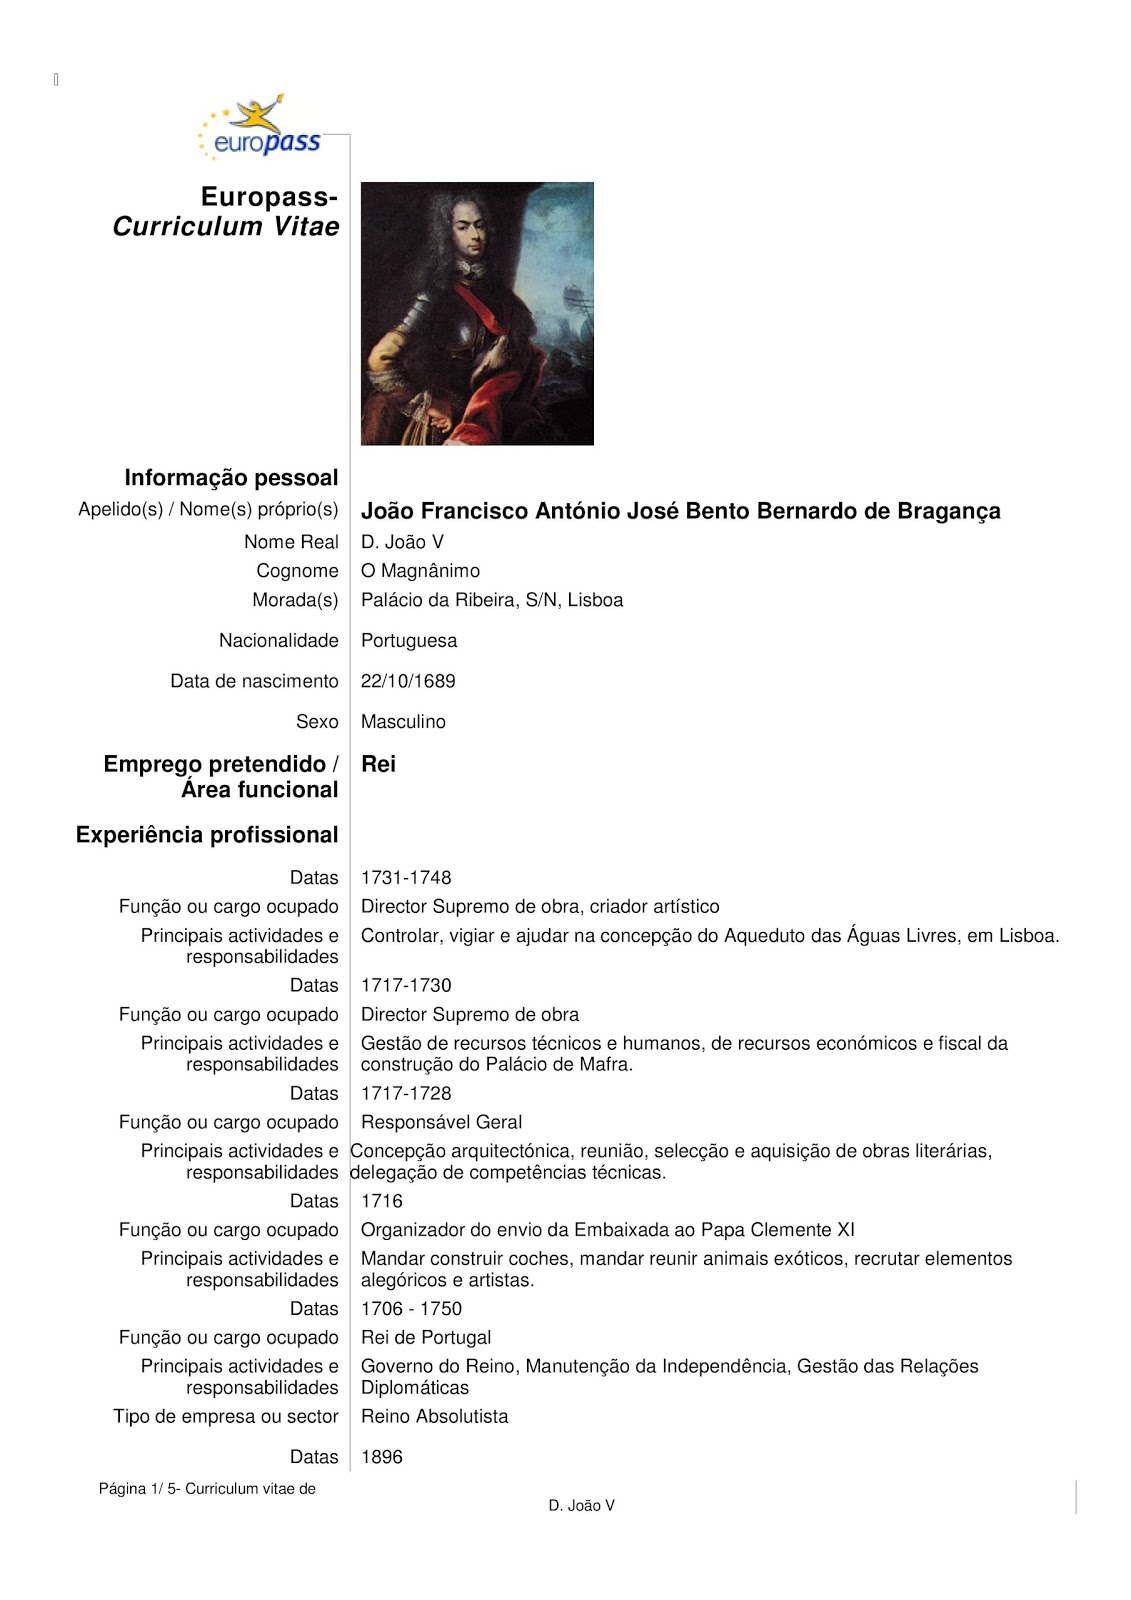 curriculum vitae download word portugues